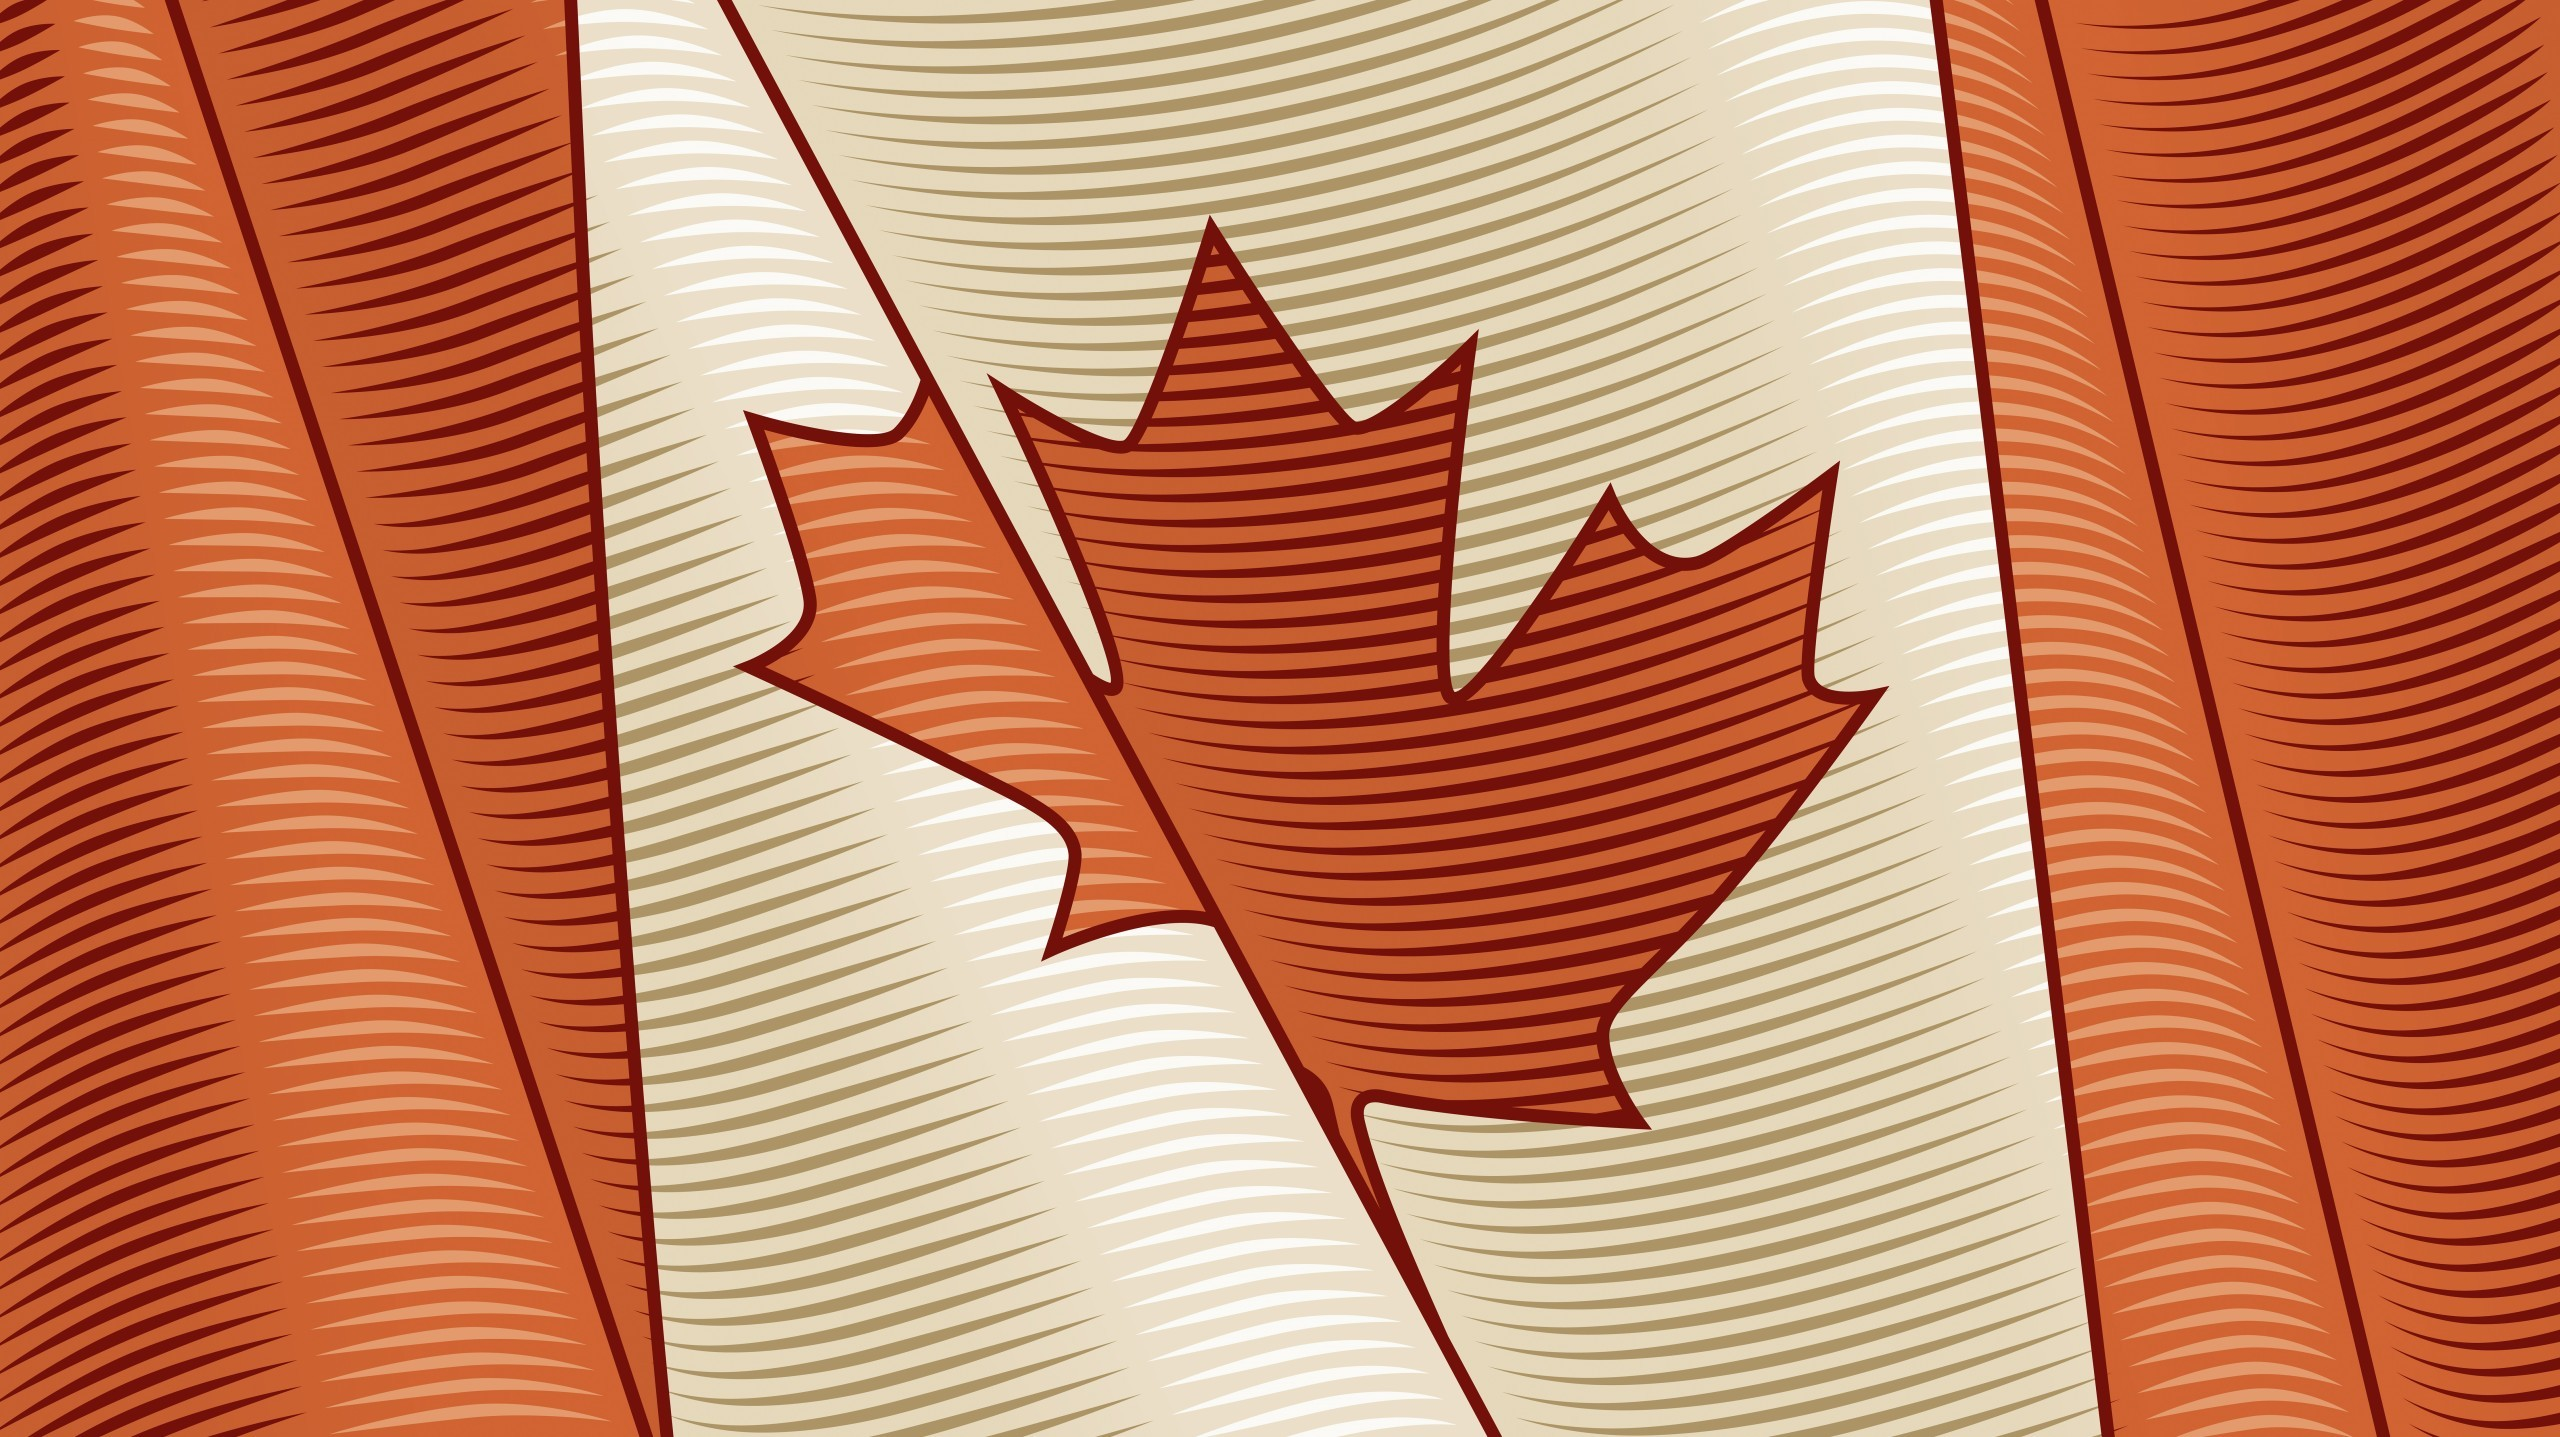 https://pccex.io/proudly-canadian…urrency-exchange/